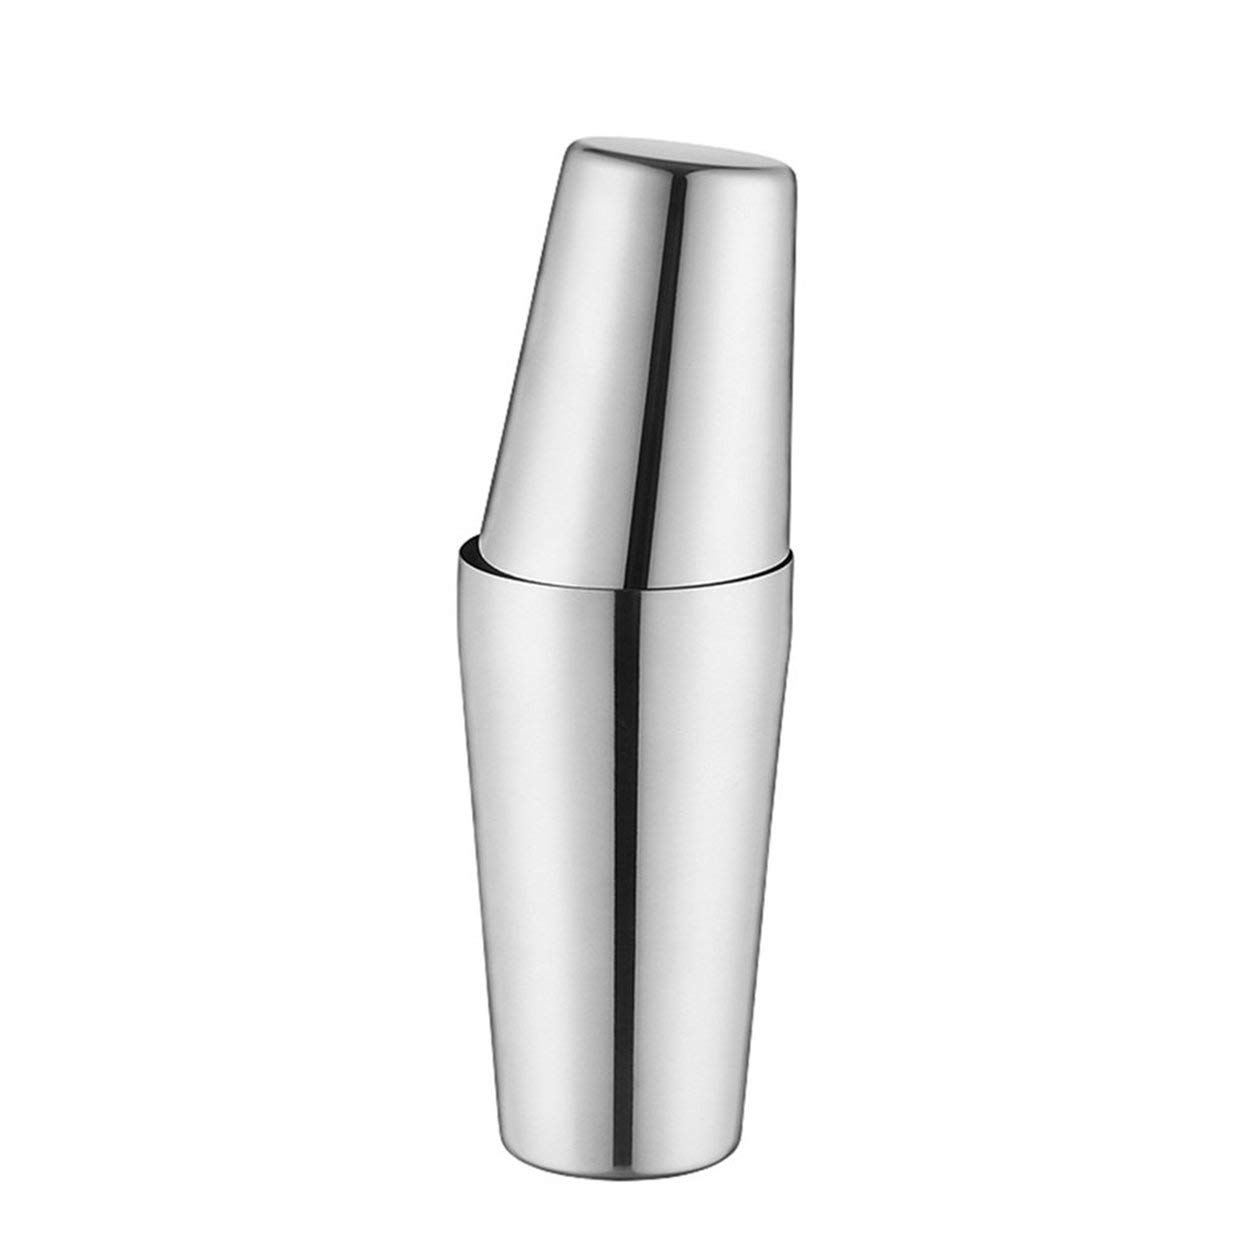 Folwme Professional S75-9 600ML Stainless Steel Cocktail Shaker Set Boston Style Shaker Wine Mixer Drinking Tool for Bartender Gifts-Silver-1 Size